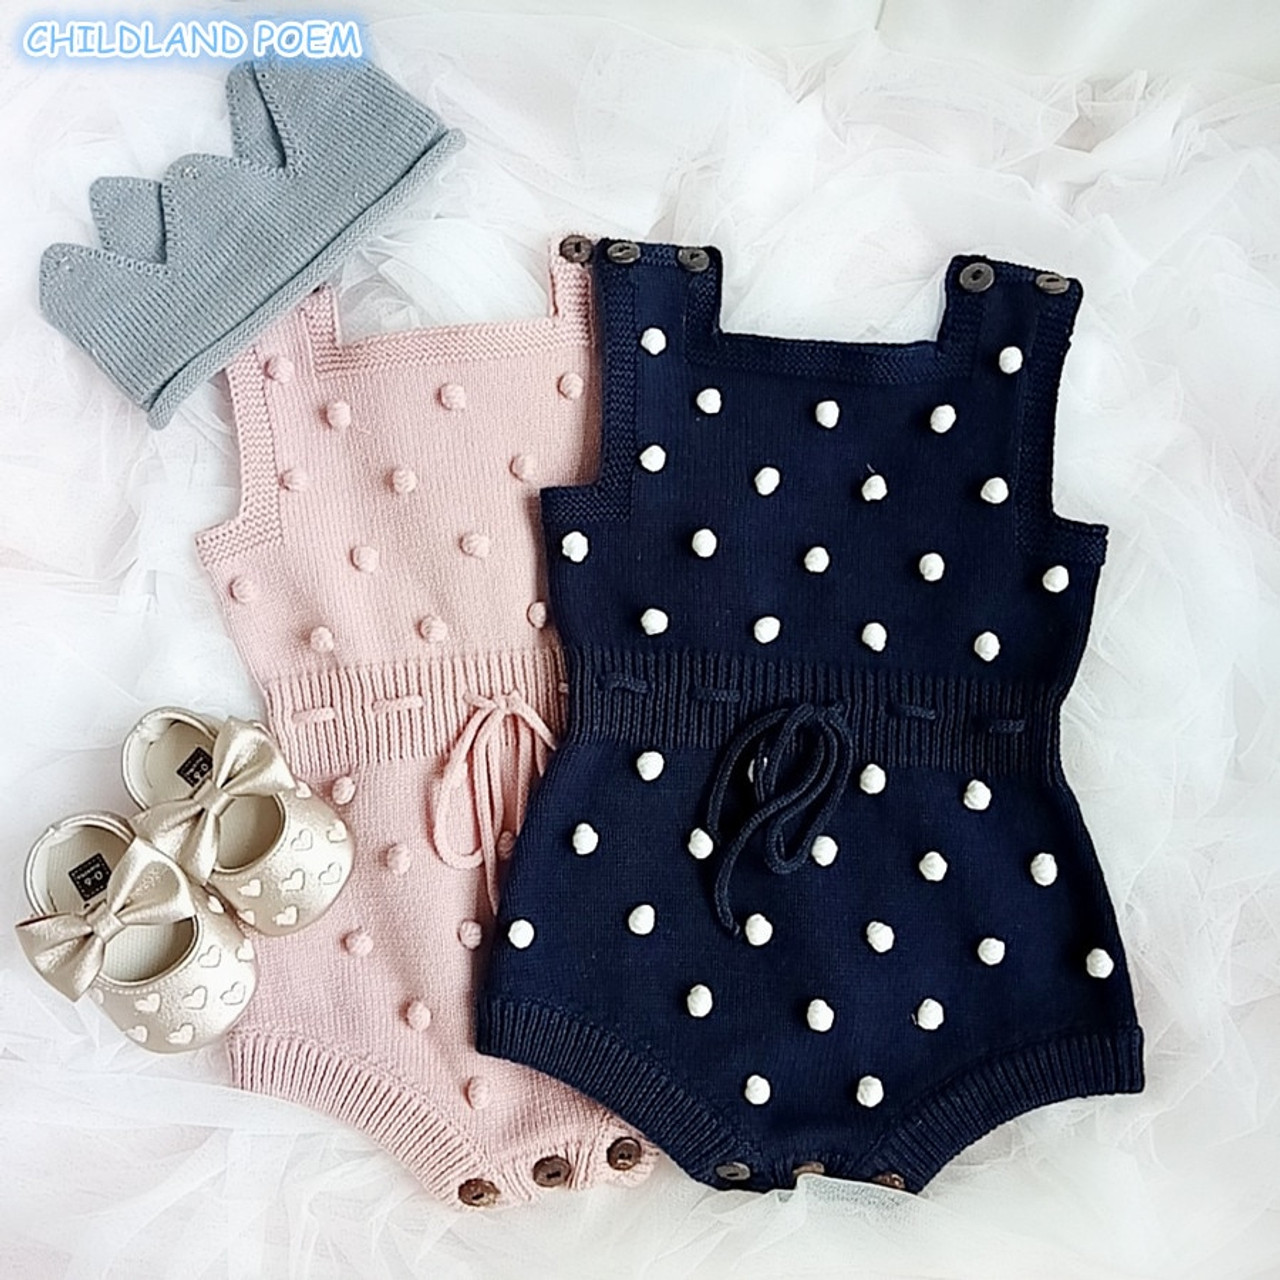 0ec9358b6a088 Baby Knitted Clothes Autumn Knit Baby Rompers Girl Pompom Baby Girl Romper  Boys Jumpsuit Overall Newnborn Infant Baby Clothes